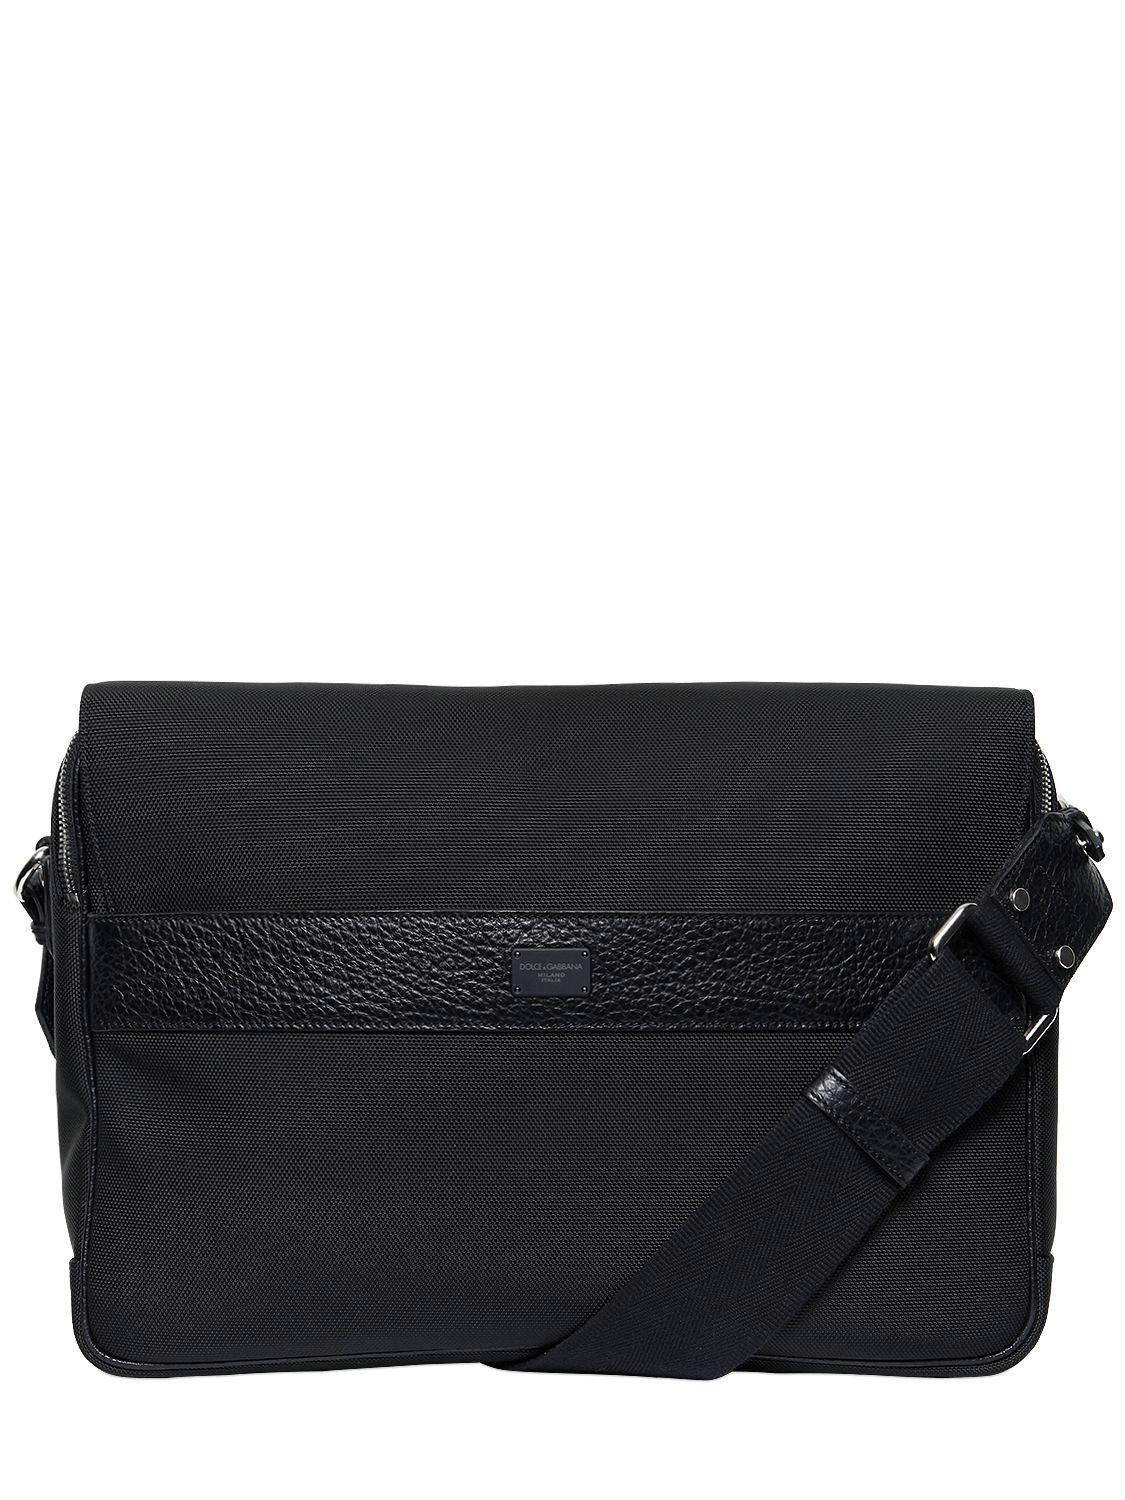 Dolce   Gabbana Nylon   Leather Messenger Bag in Black for Men - Lyst 15cc046f4fa58